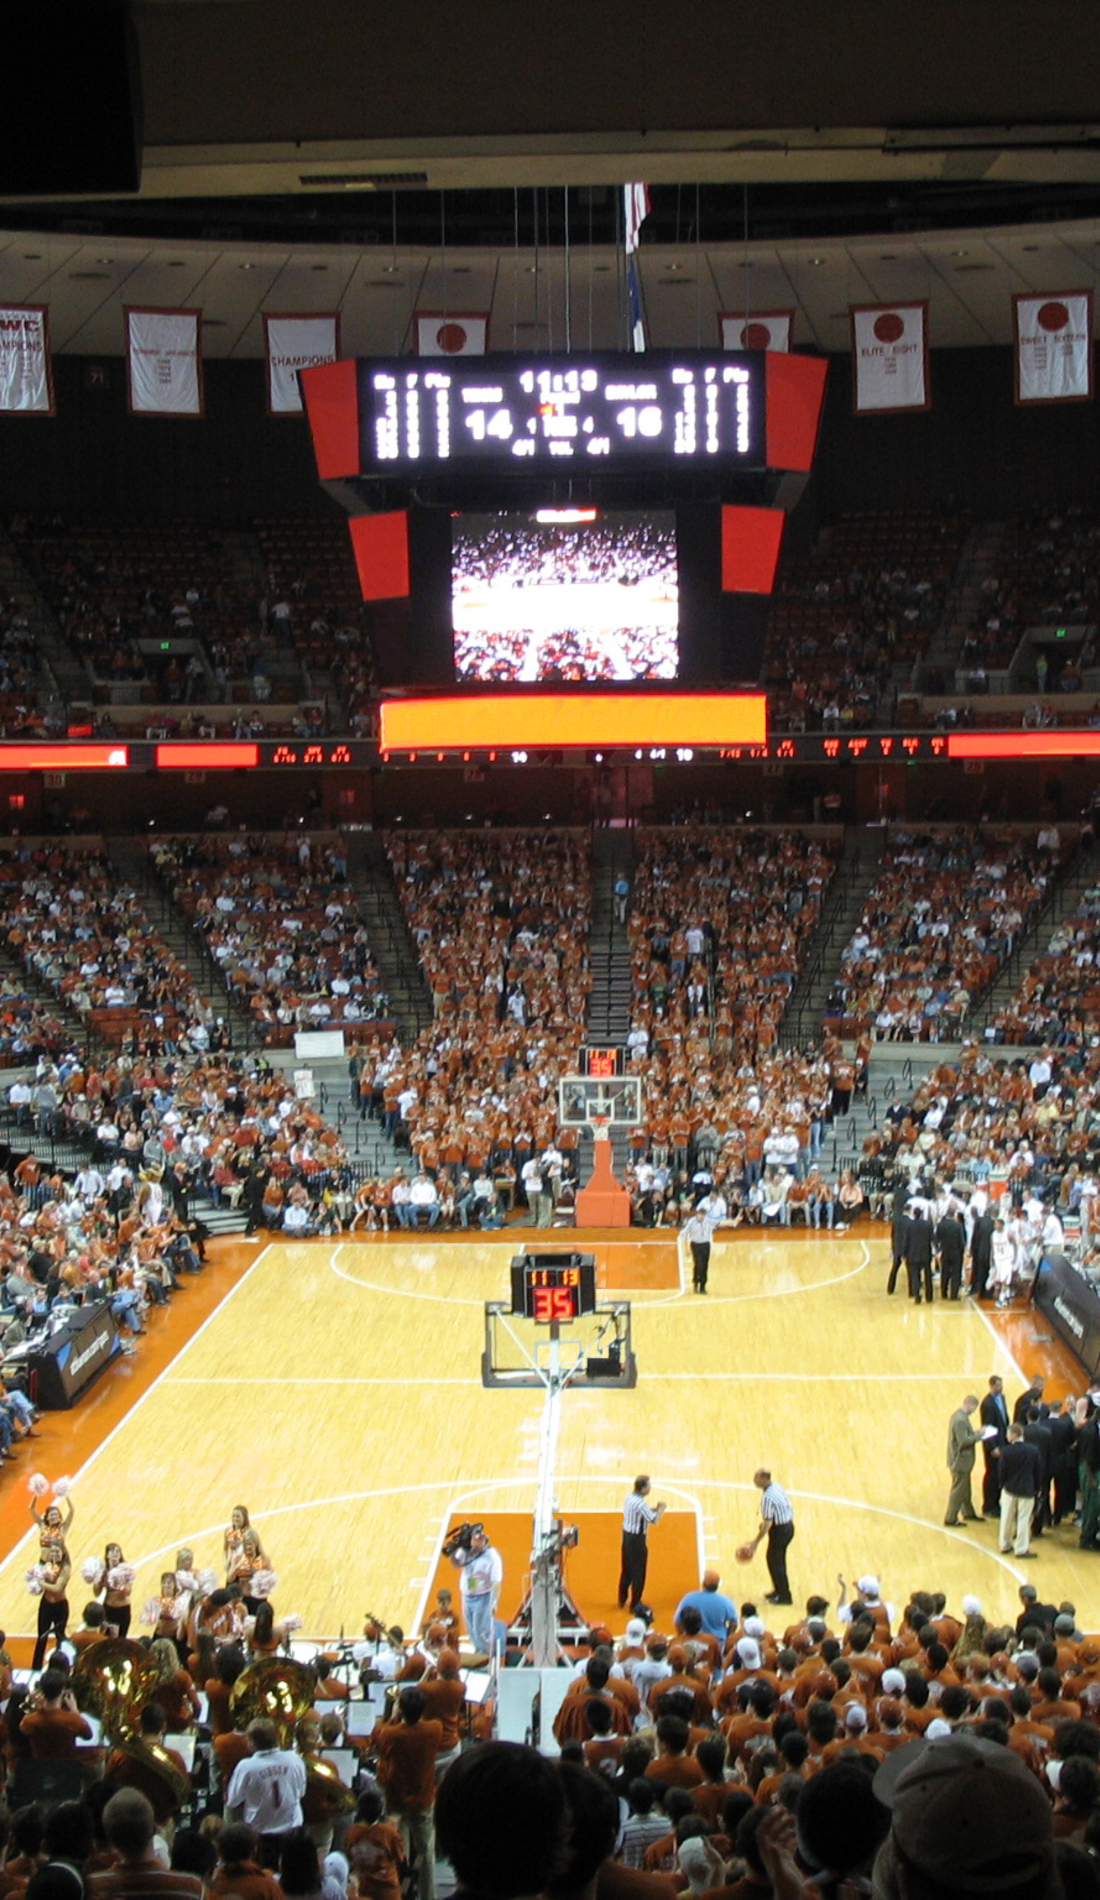 A Texas Longhorns Basketball live event